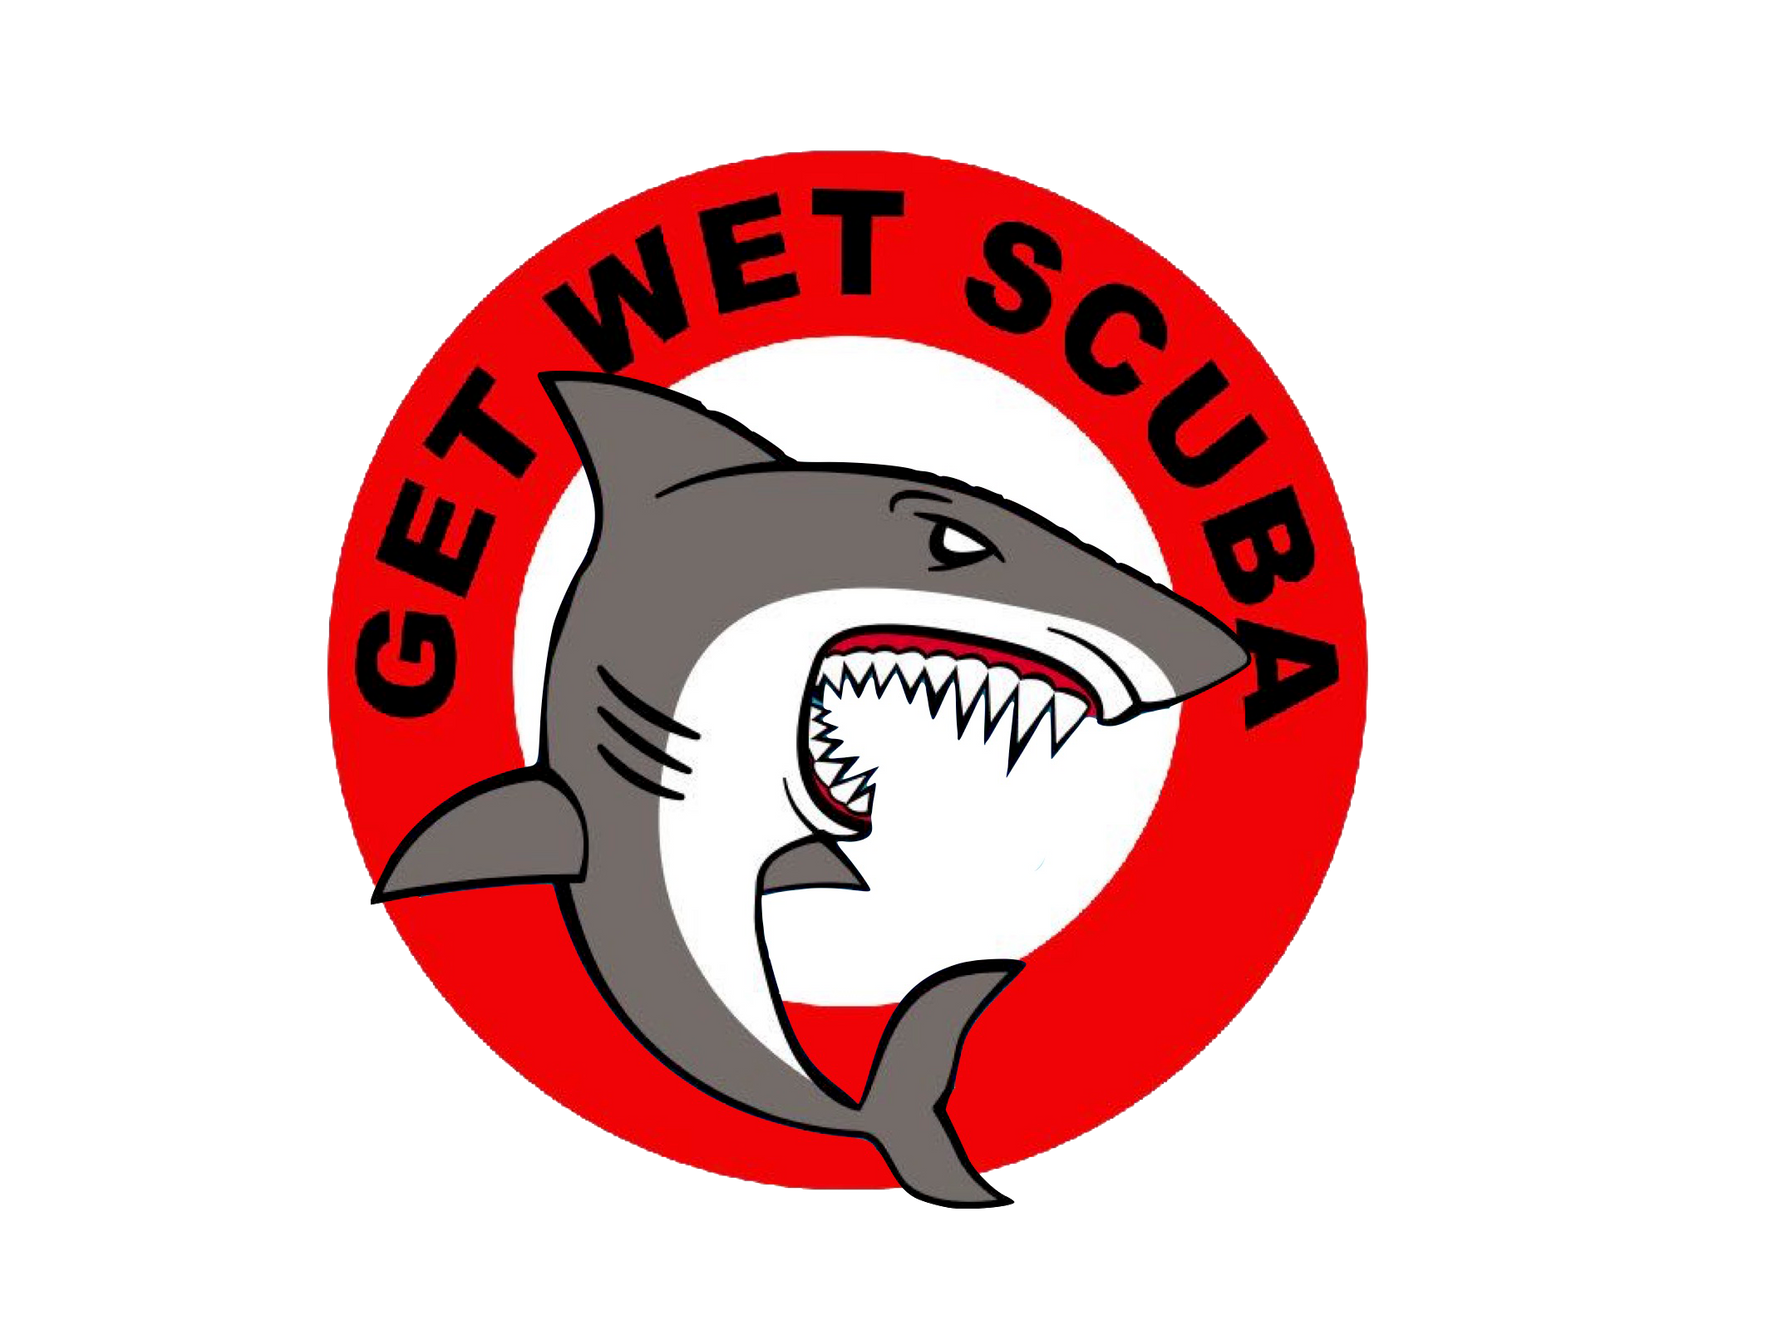 Get Wet Scuba - Official Homepage